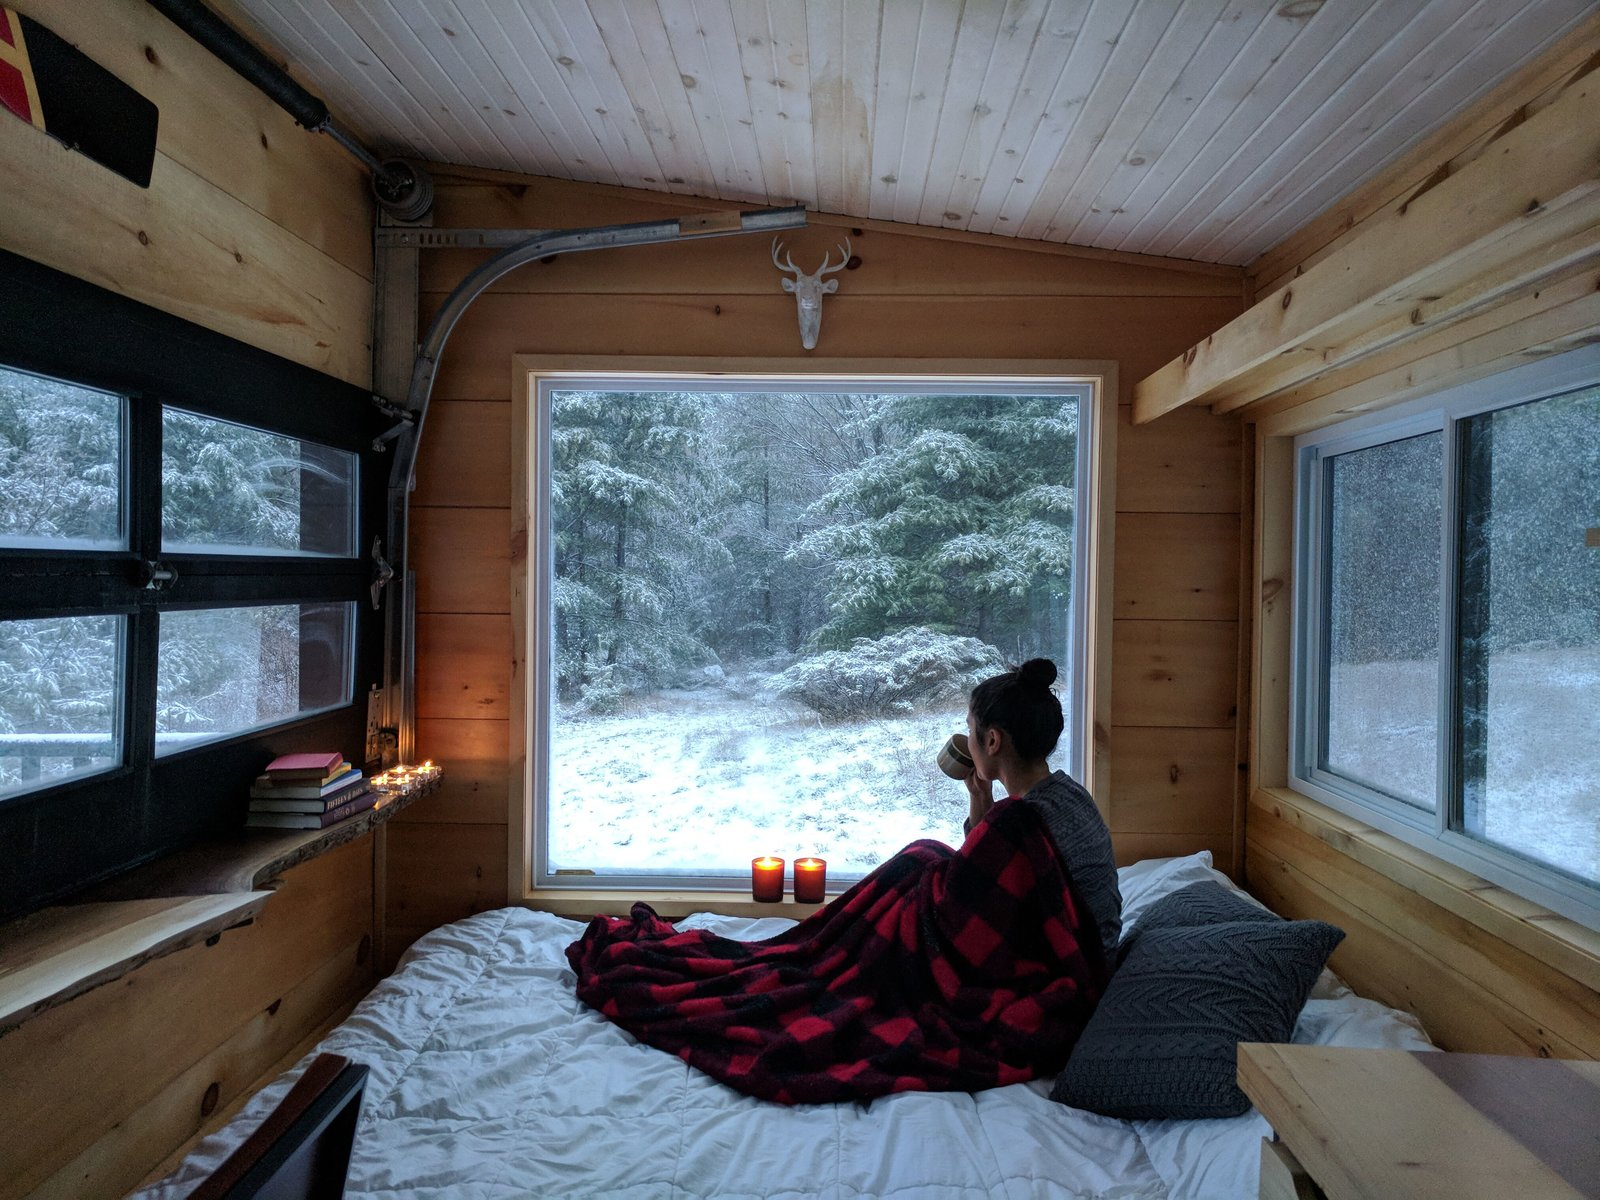 Even on the coldest winter day, these cozy cabins, which are heated by a propane furnace, are warm and inviting.